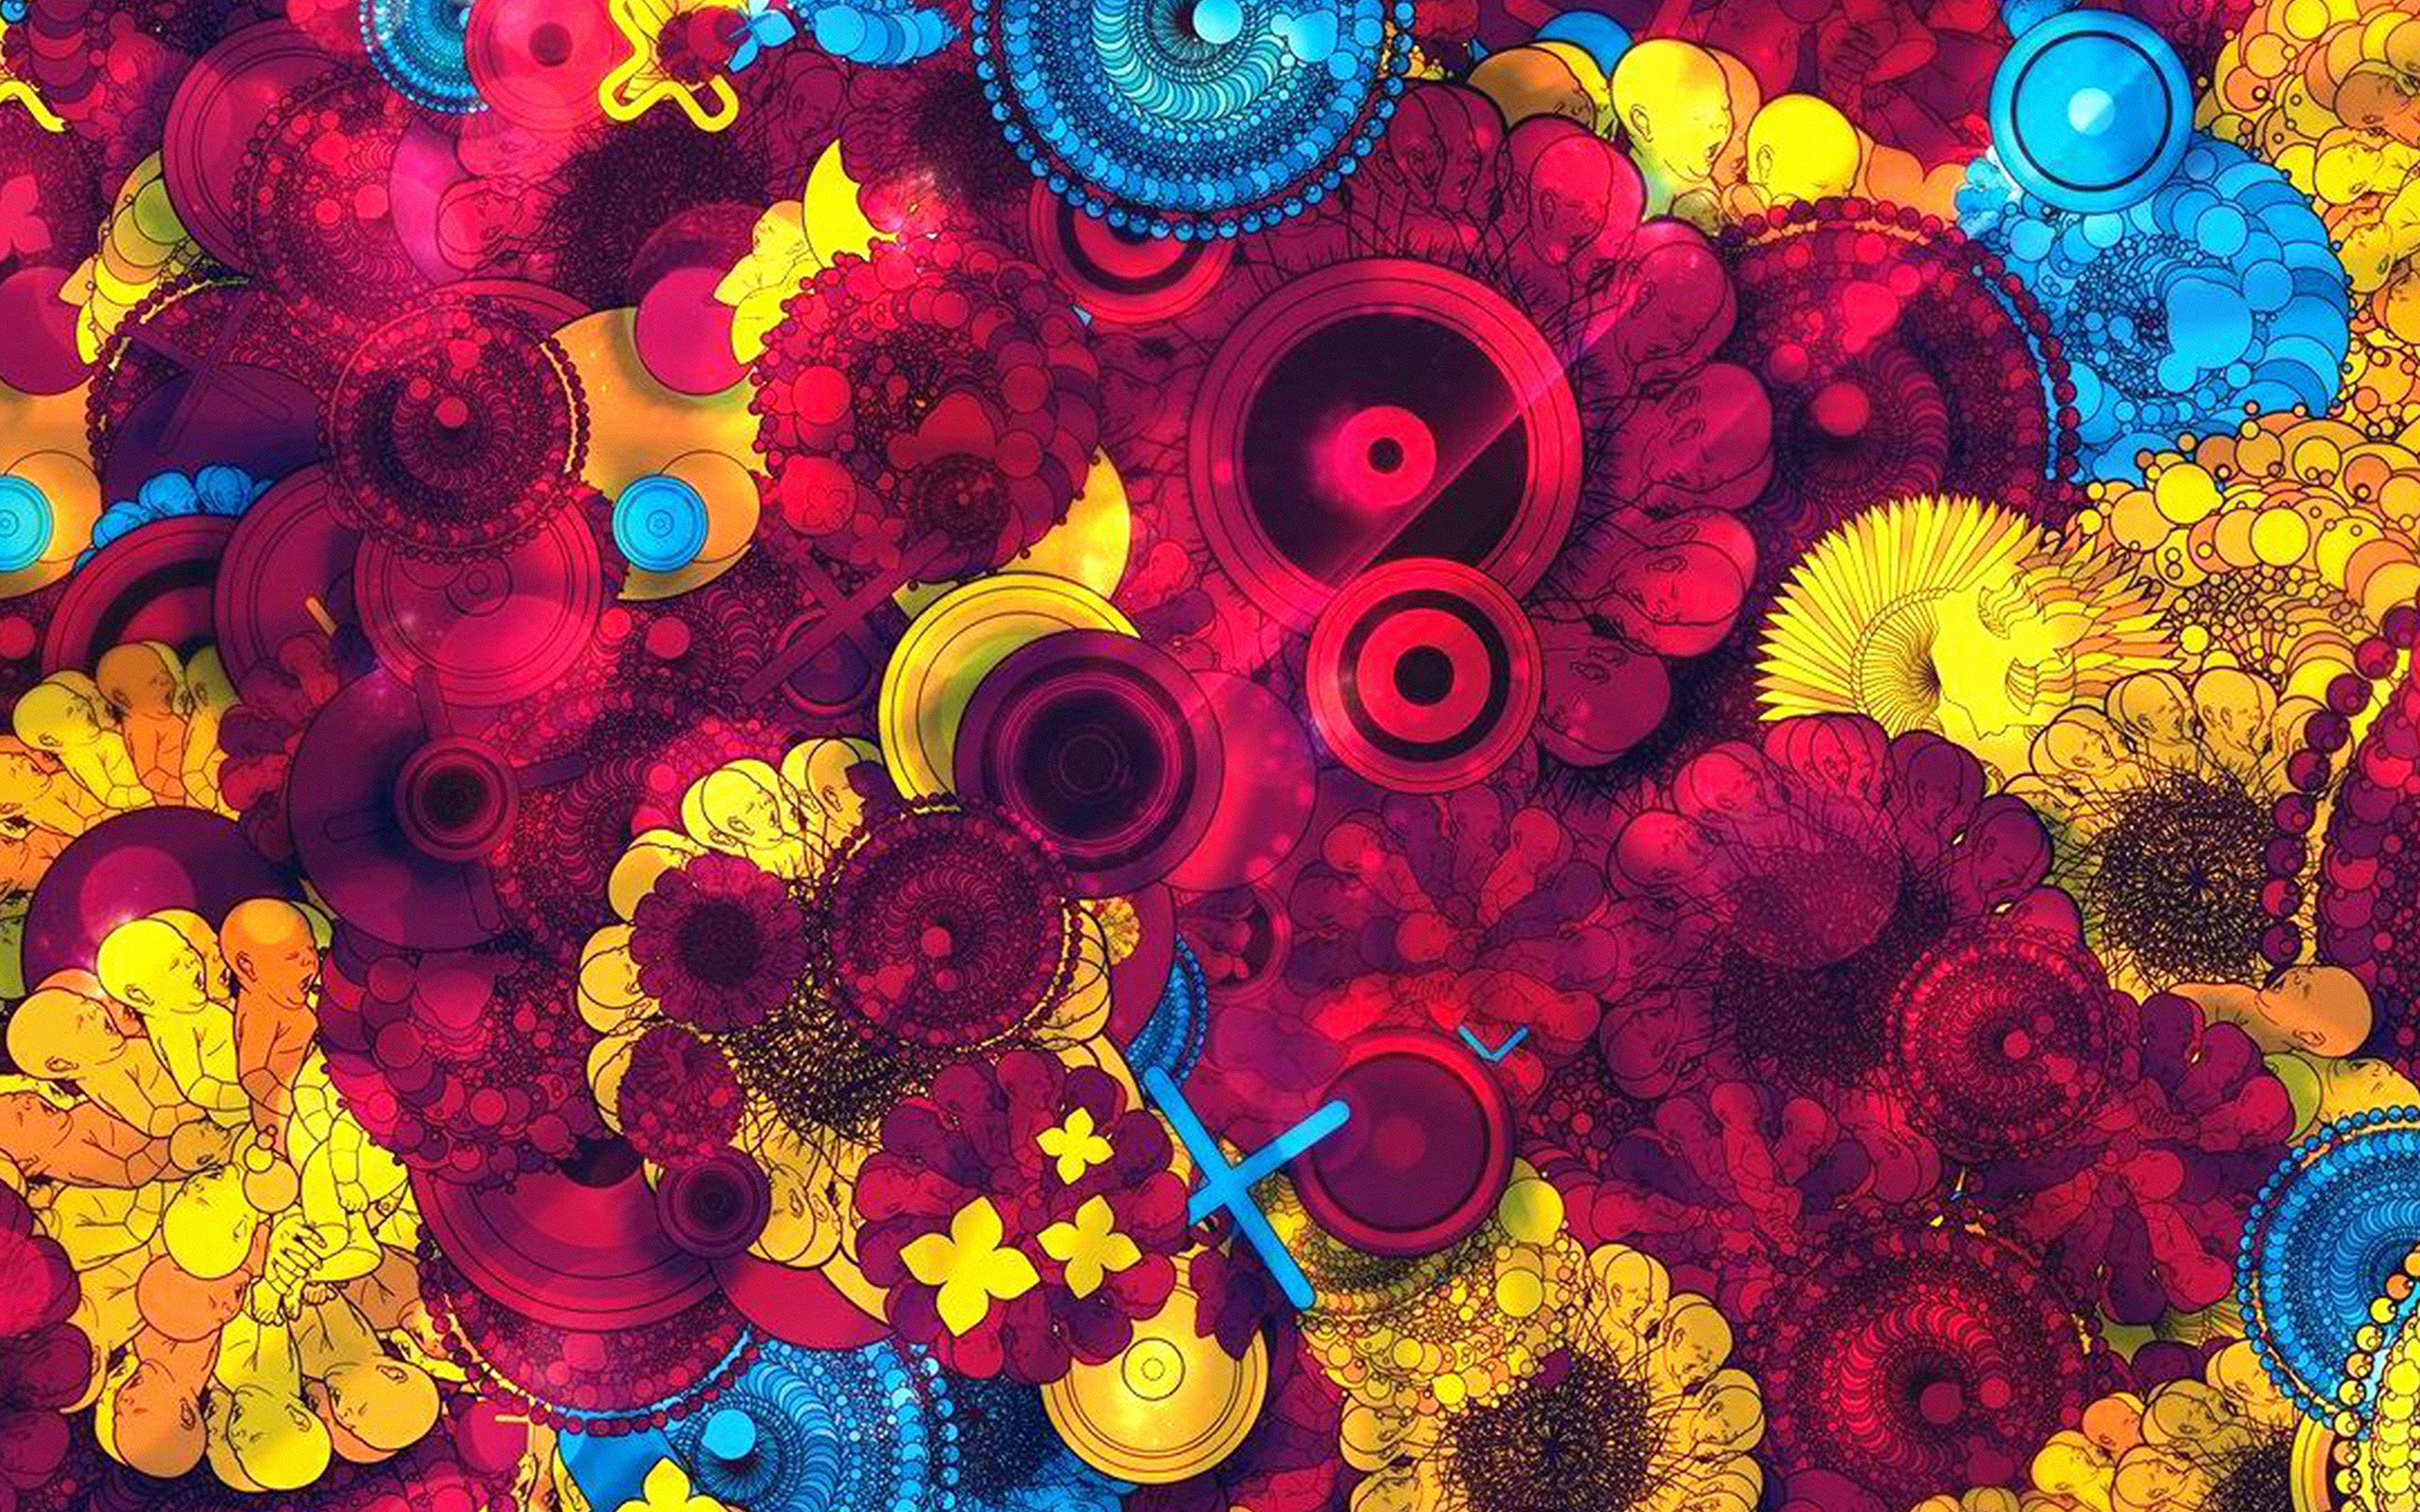 Lg Animated Wallpaper Vq58 Abstract Art Red Blue Yellow Color Pattern Wallpaper